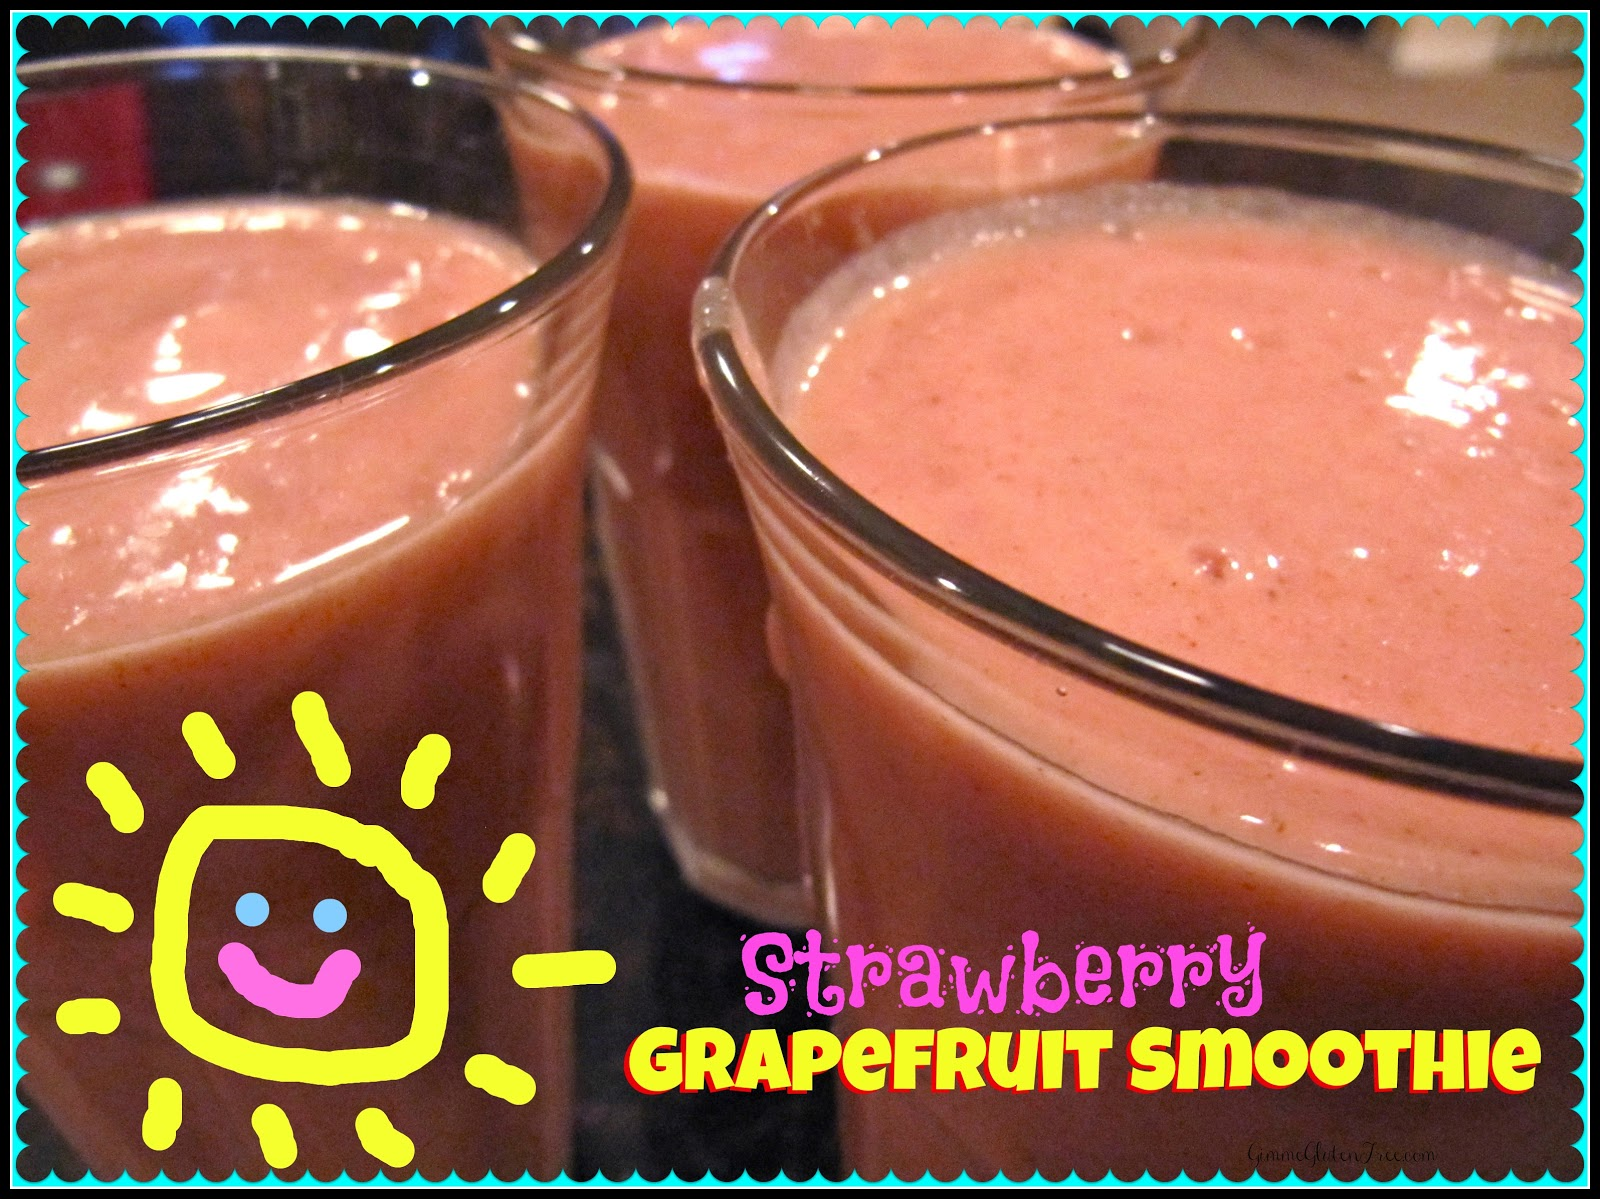 Strawberry Grapefruit Smoothie ~ The perfect way to wake-up!